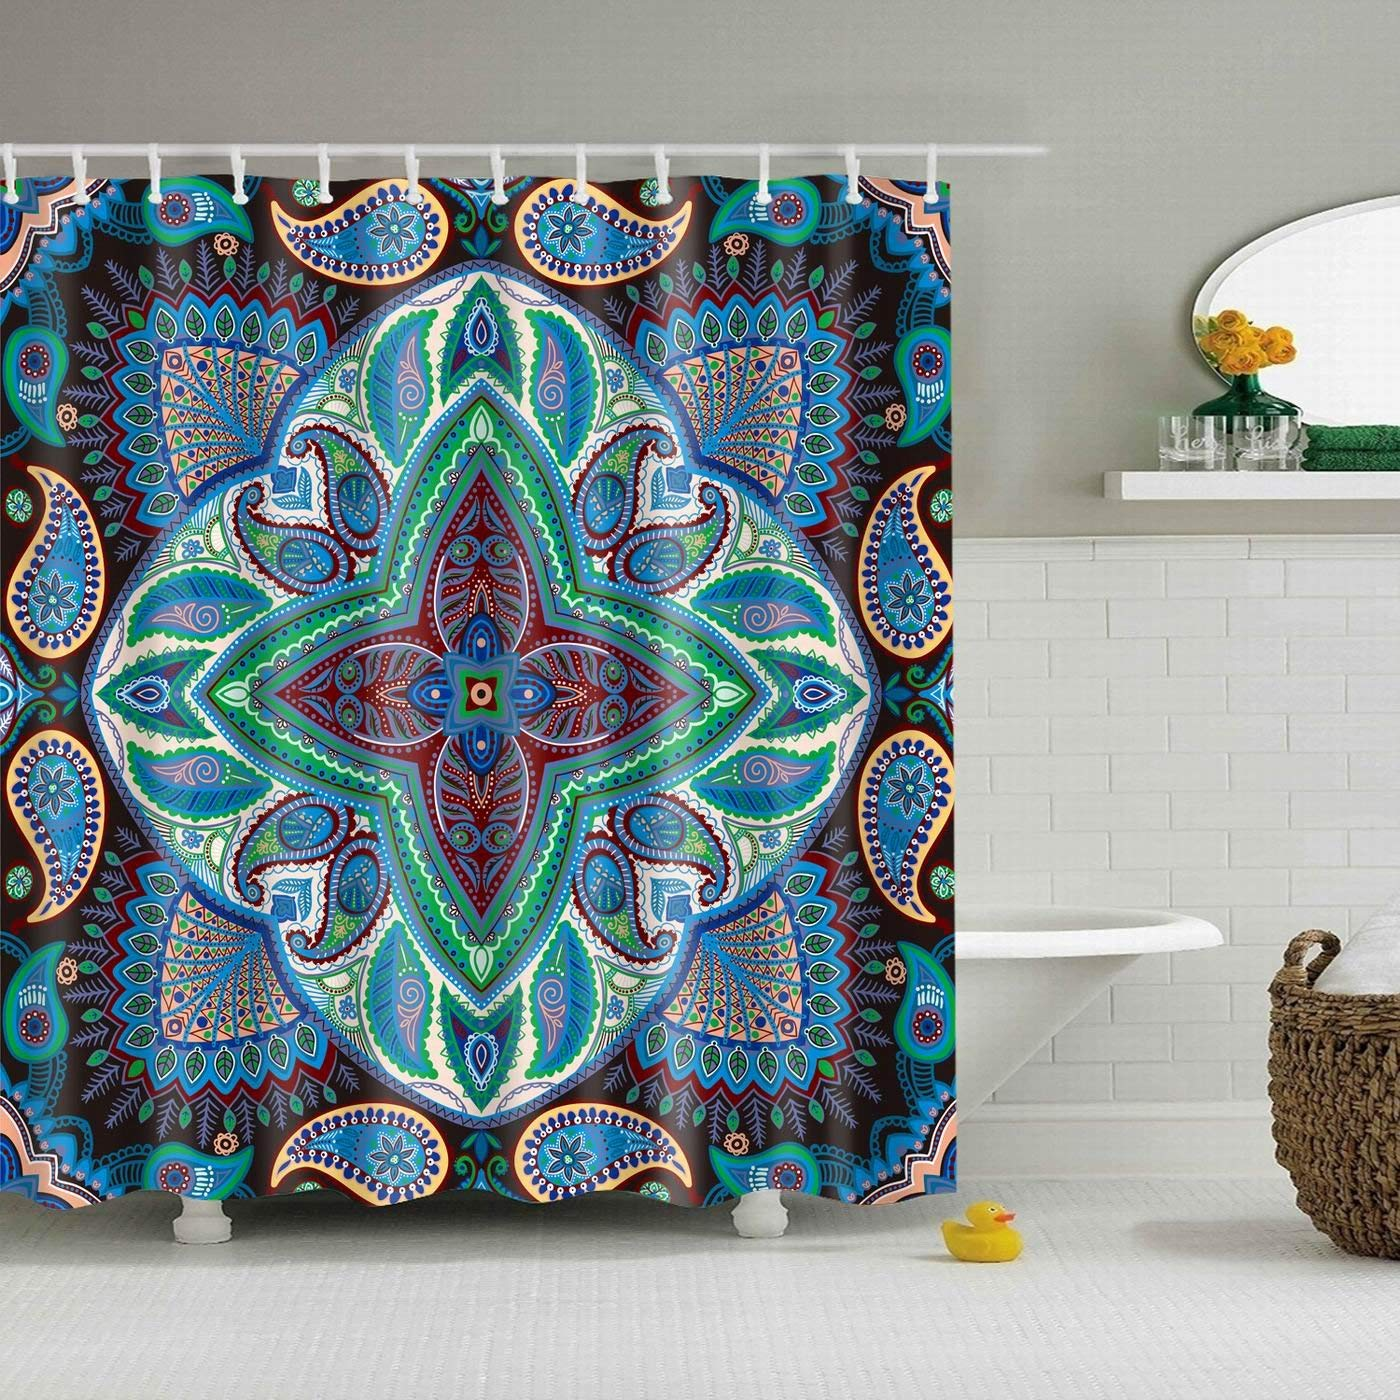 bab36e88177e2 Inter Decor Psychedelic Decor Shower Curtain Set, Paisley Floral Patterns  With Psychedelic Motif Boho Hippie